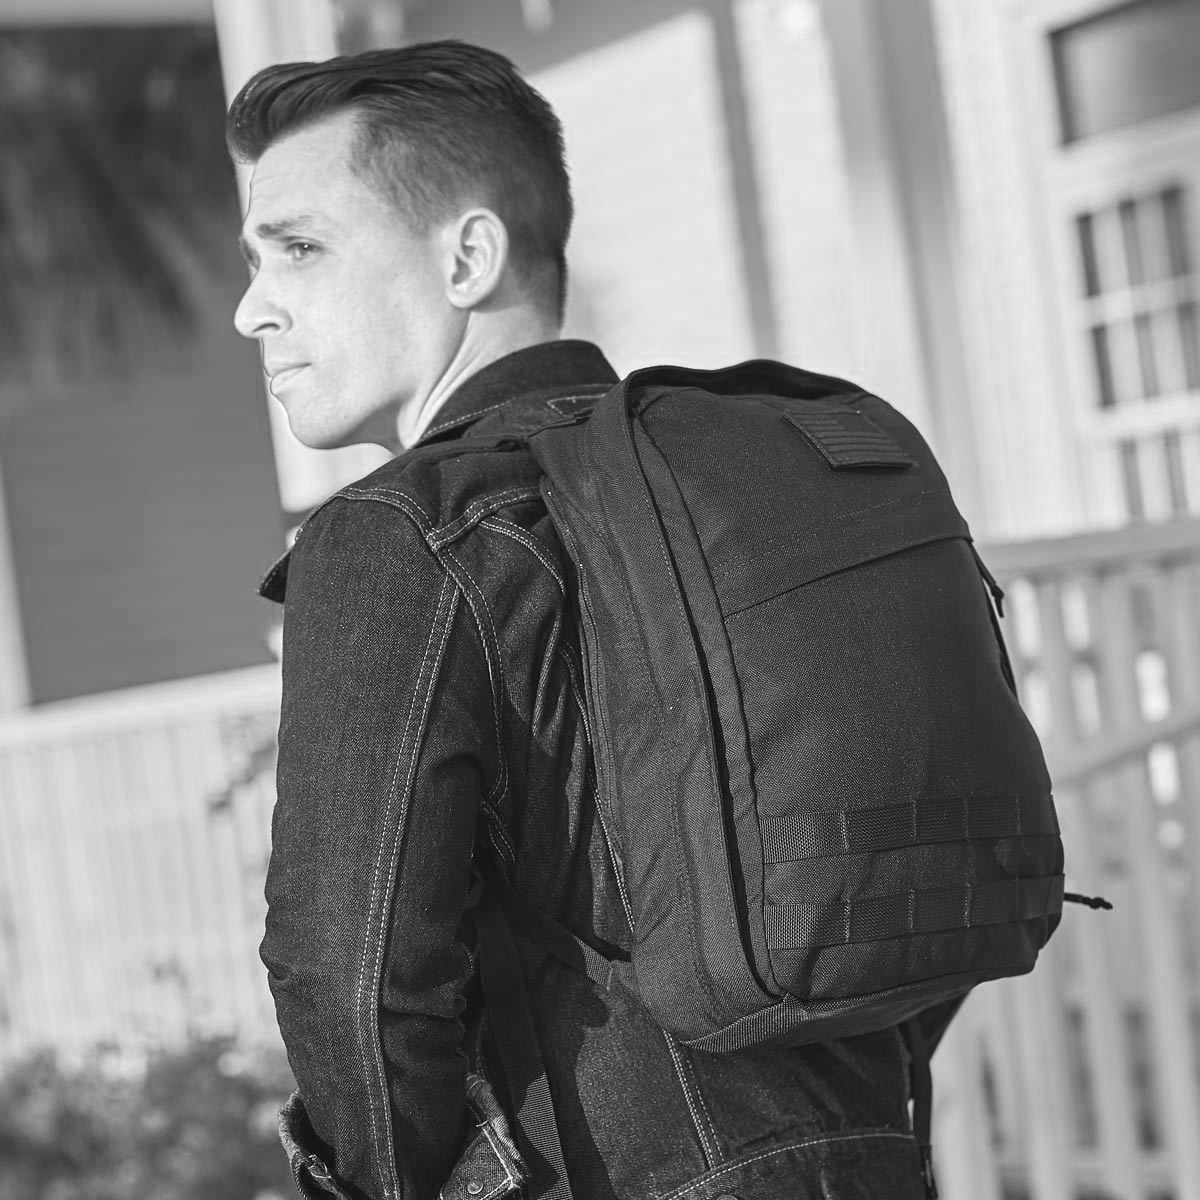 GORUCK Echo - image source